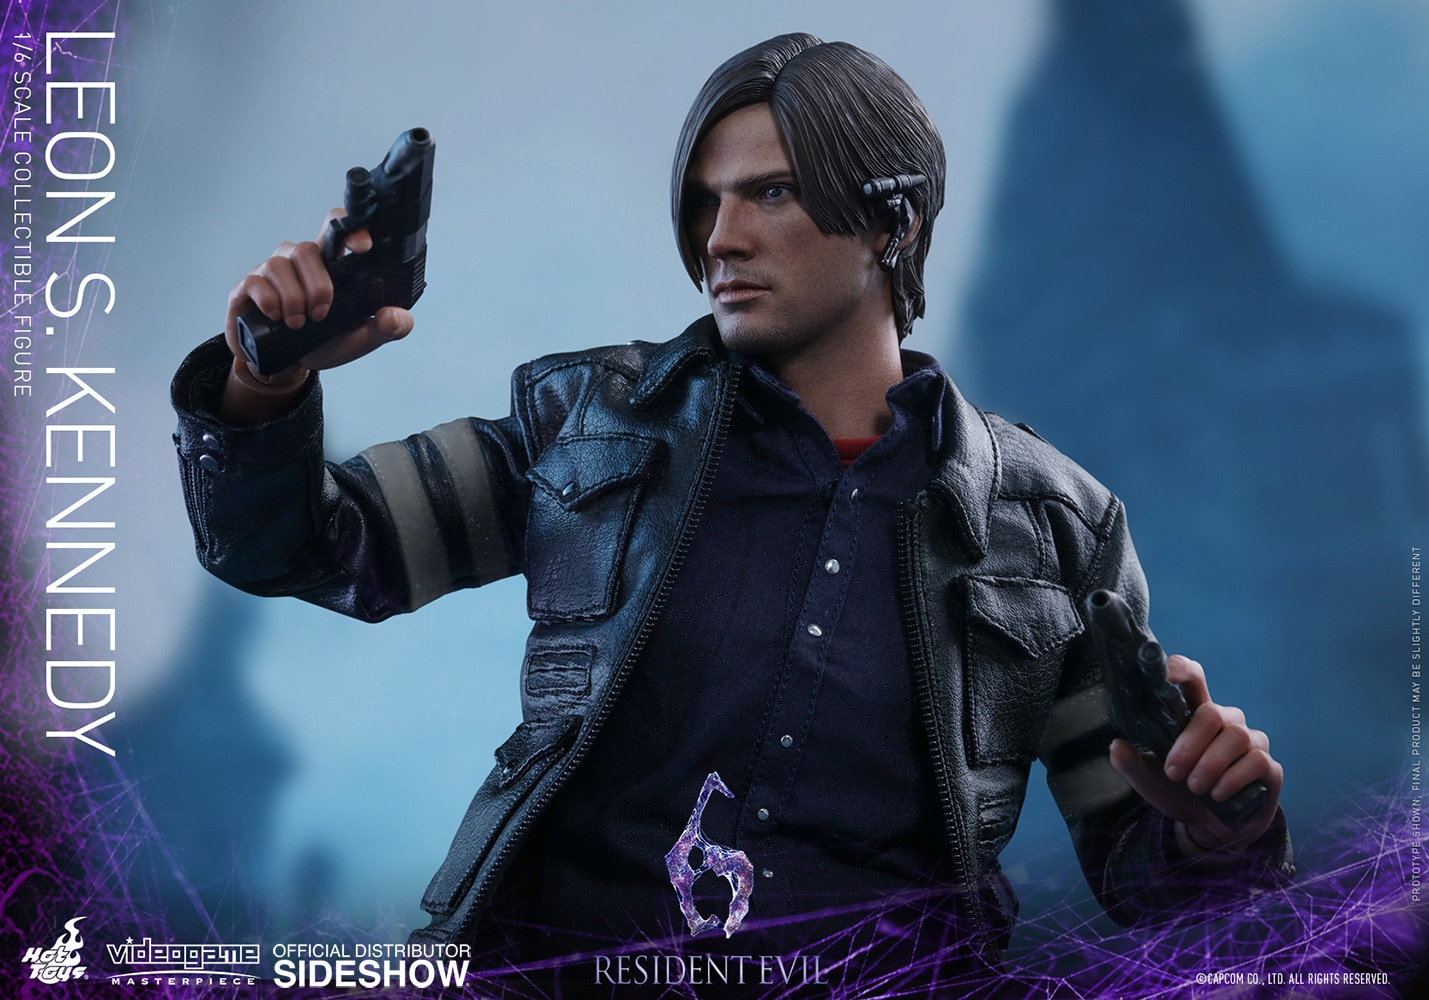 Hot Toys Resident Evil 6 Leon S Kennedy Videogame Masterpiece